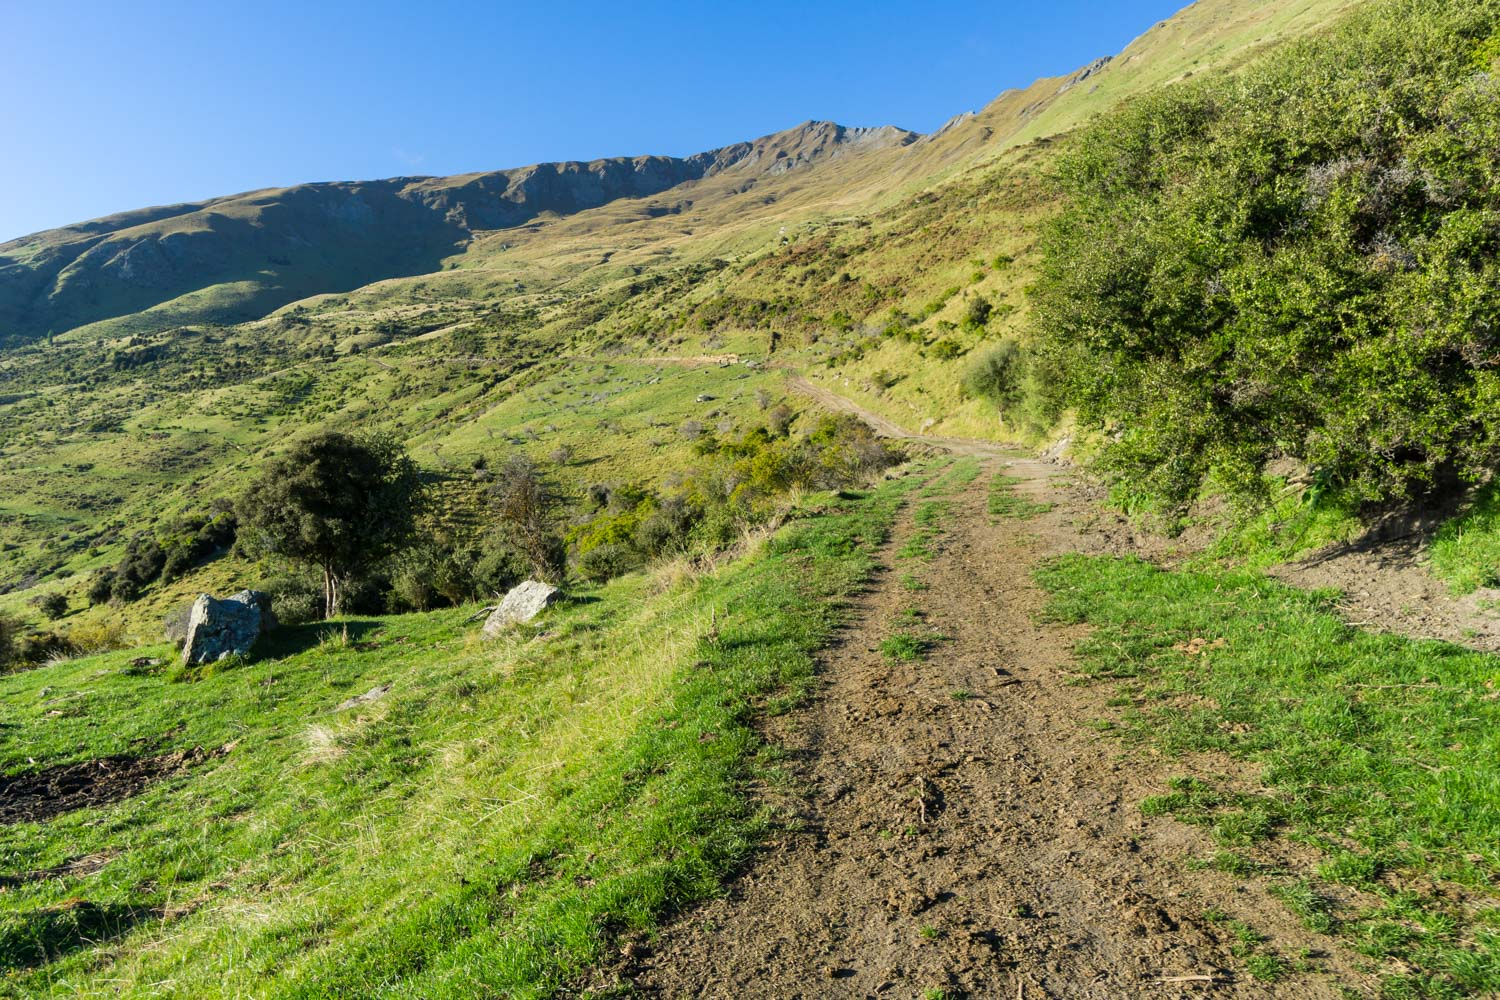 Following the dirt path